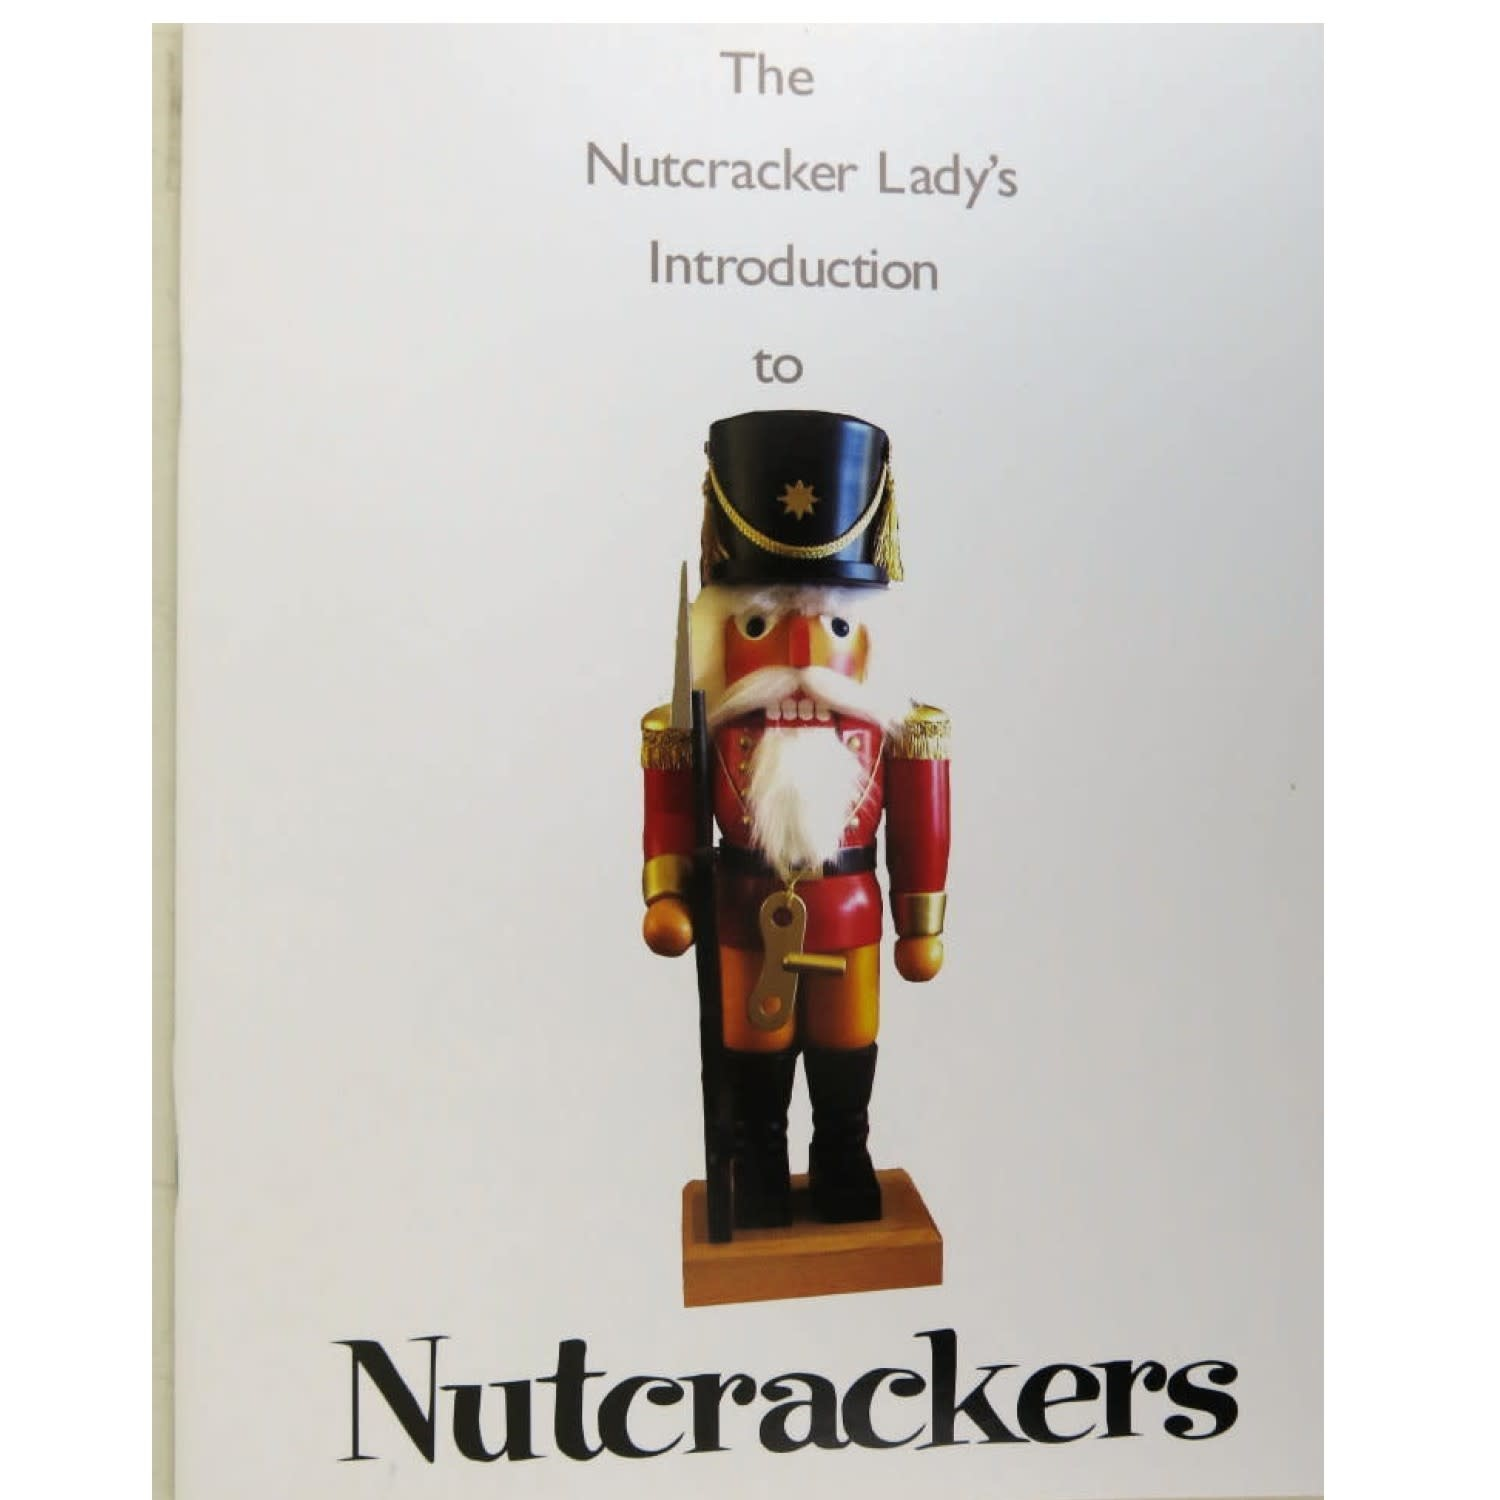 51295 The Nutcracker Lady's Introduction to Nutcrackers Book